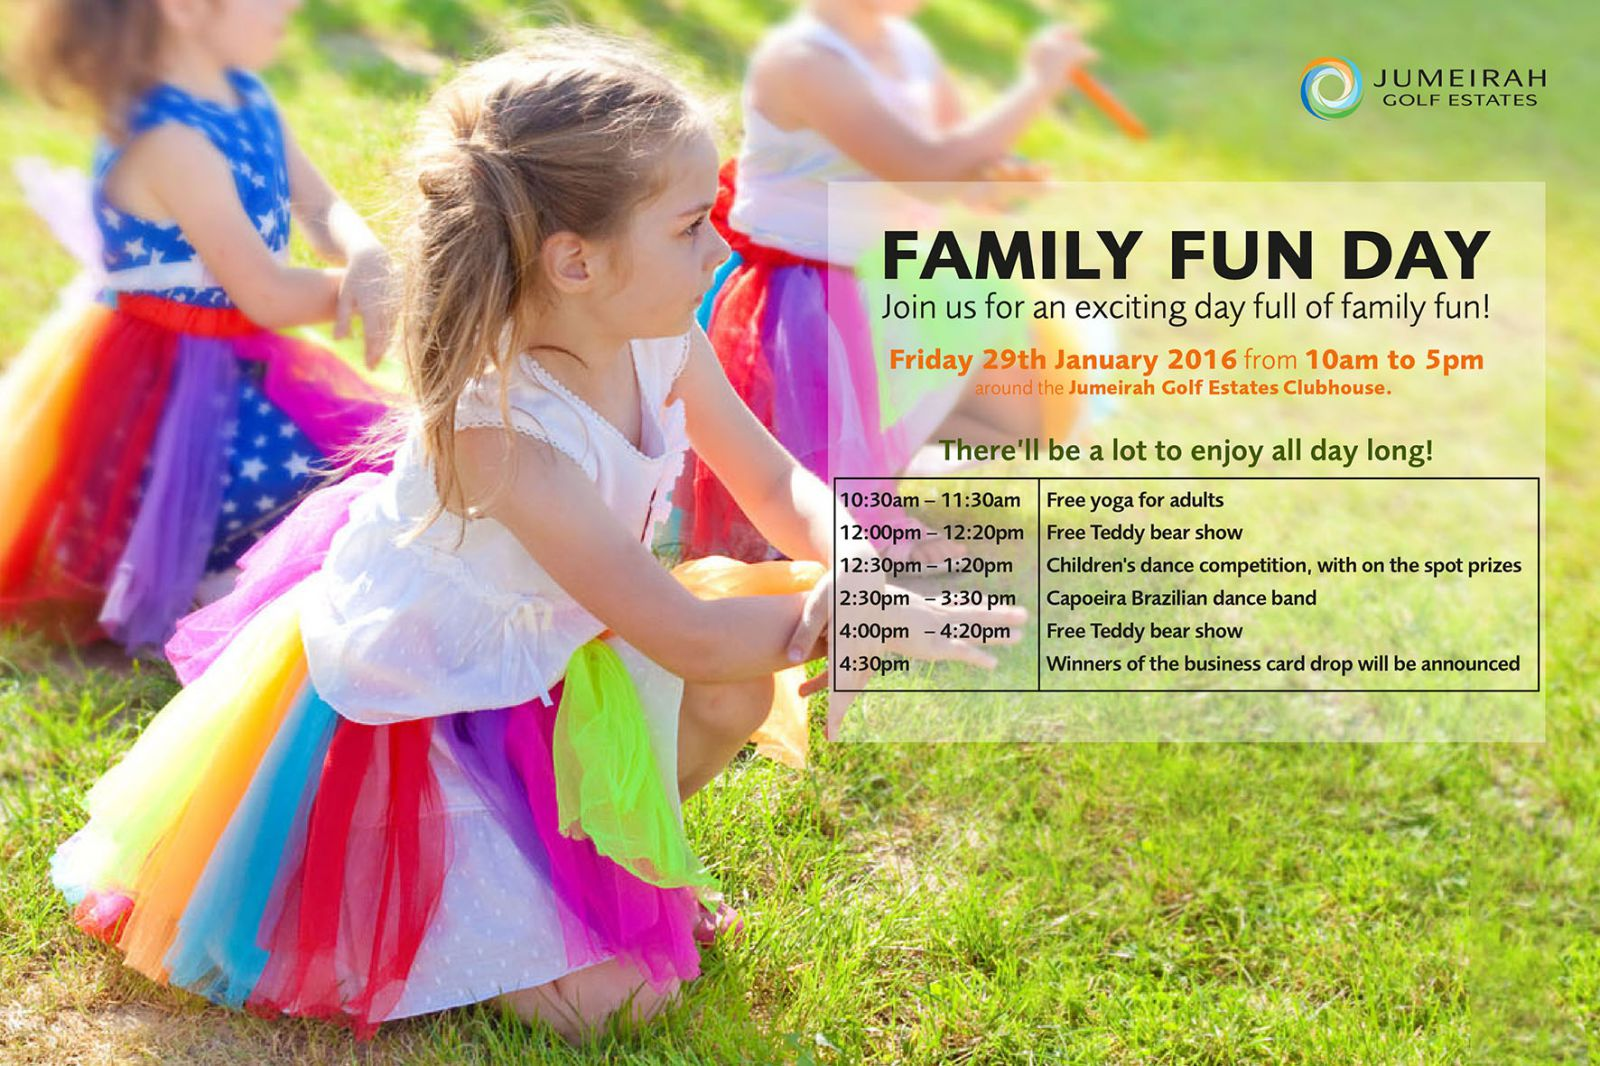 Jumeirah Golf Estates is happy to announce JGE Family Fun Day! An exciting full day for you, your ki